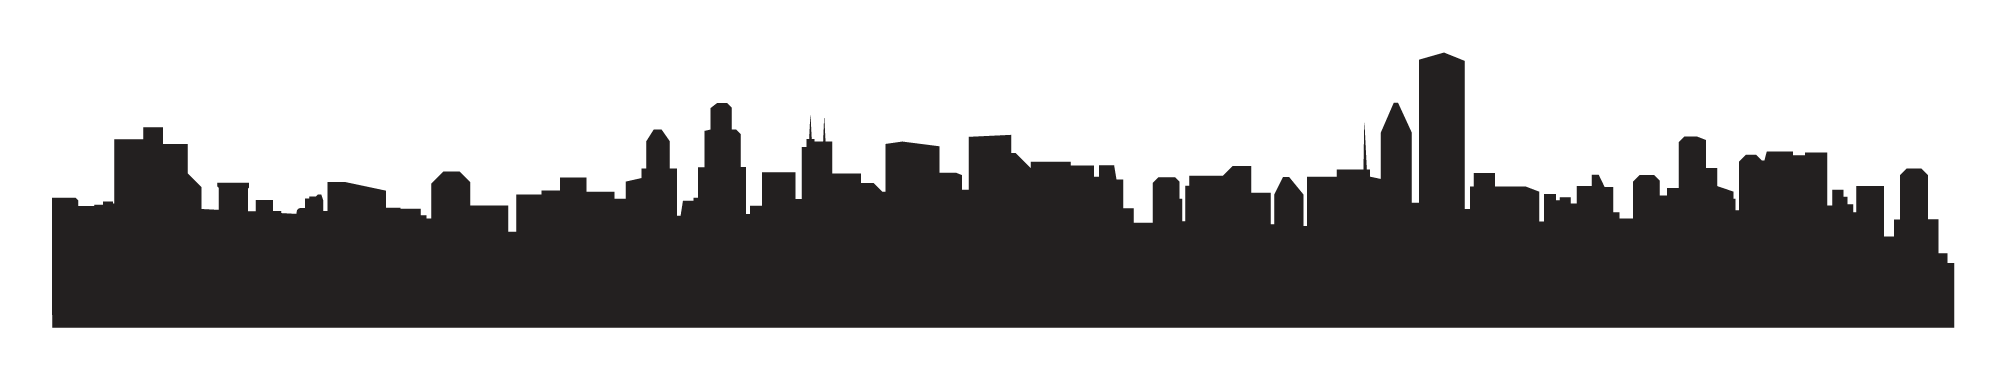 City vector png. Building silhouette at getdrawings